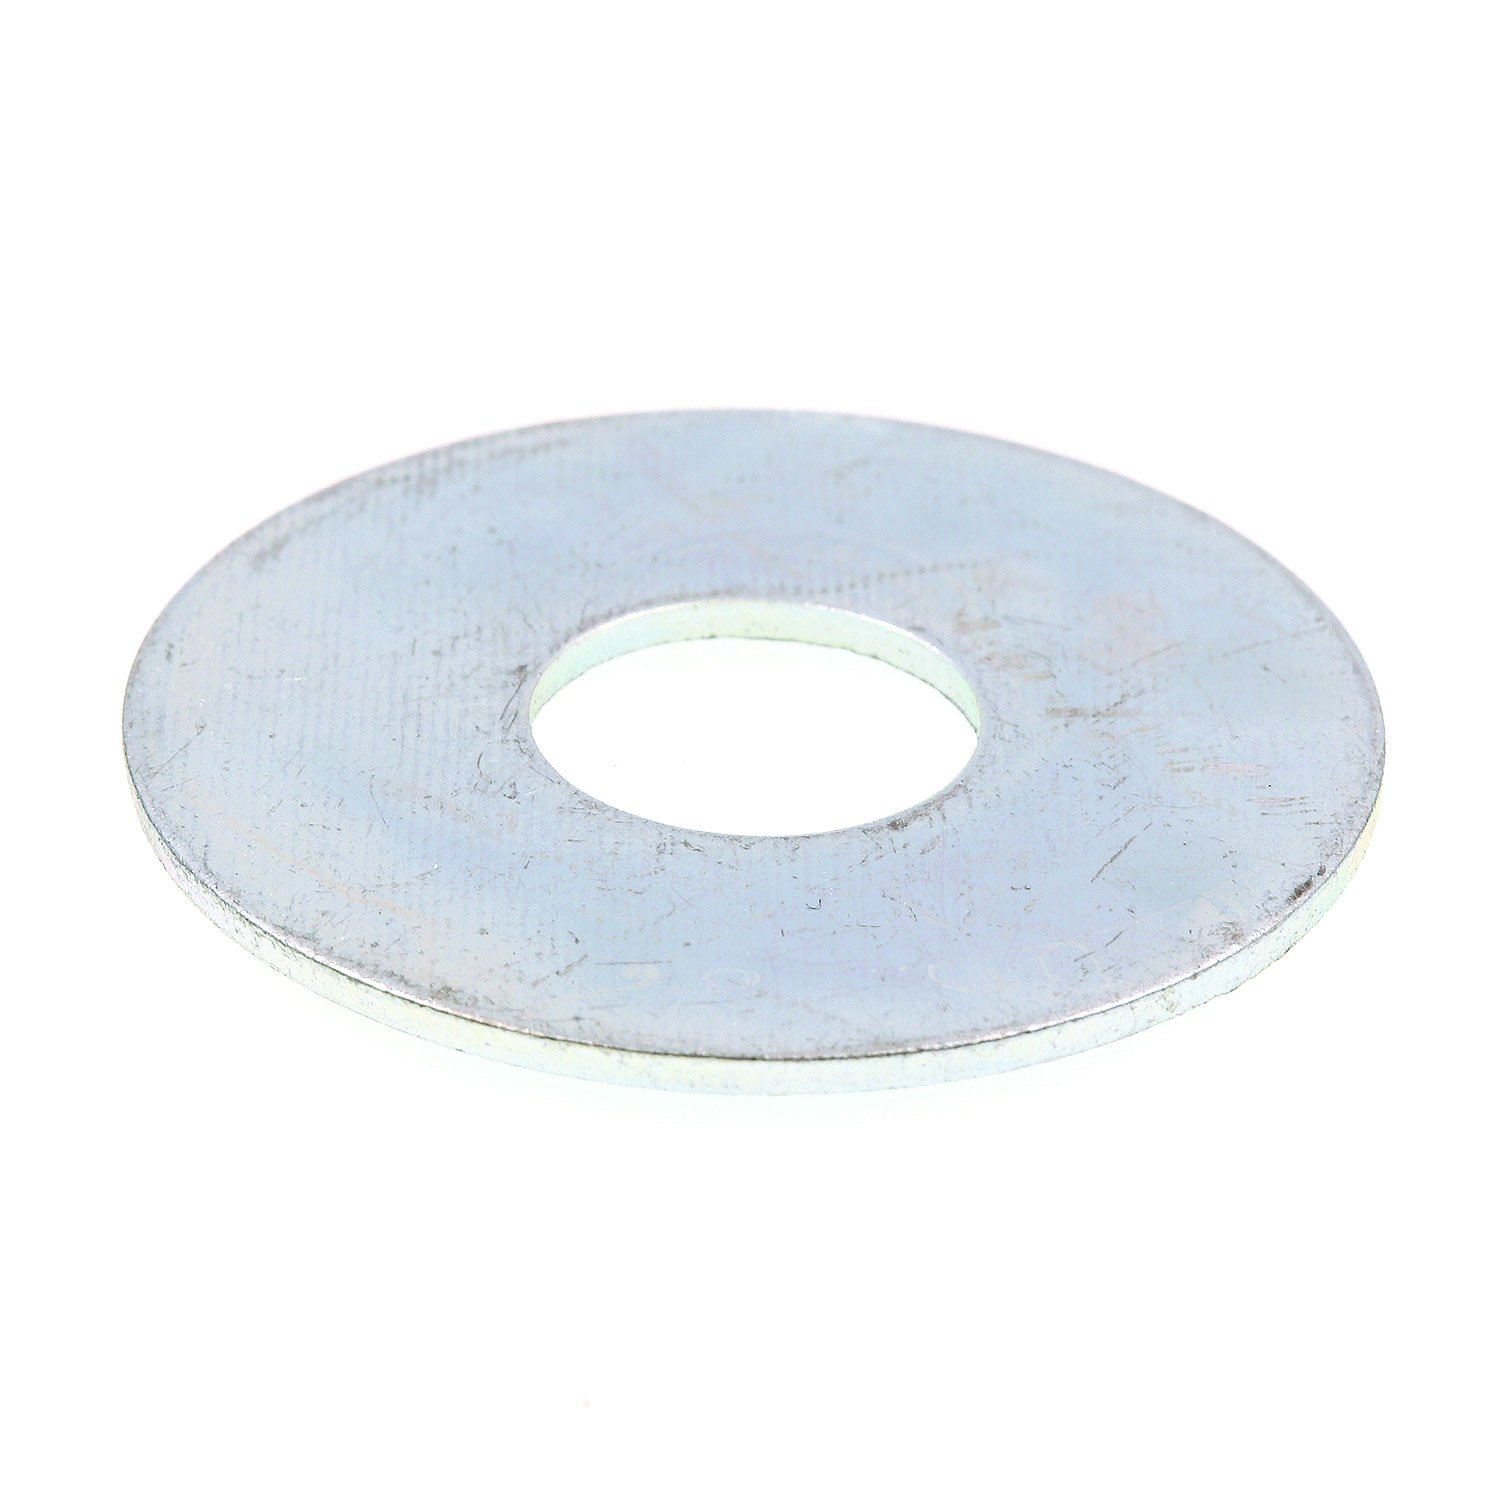 Prime Line 9081547 Fender Washers 1 2 in. X 1 1 2 in. OD Zinc Plated Steel 50 Pack